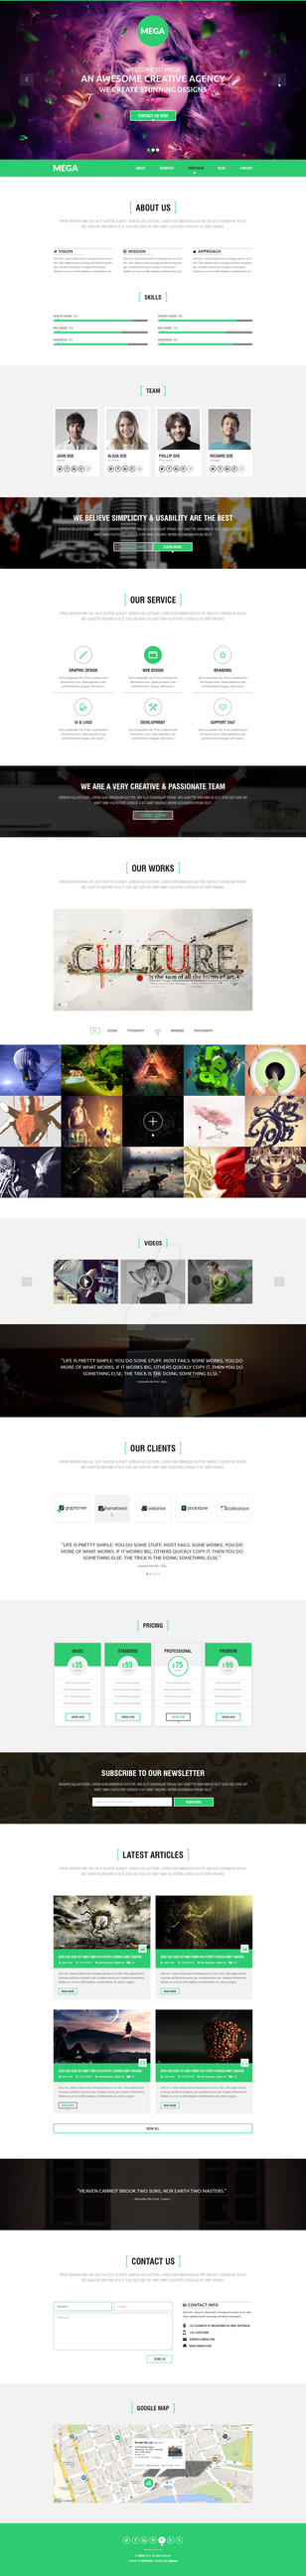 MEGA -Responsive onepage Parallax Template by wnabcreative